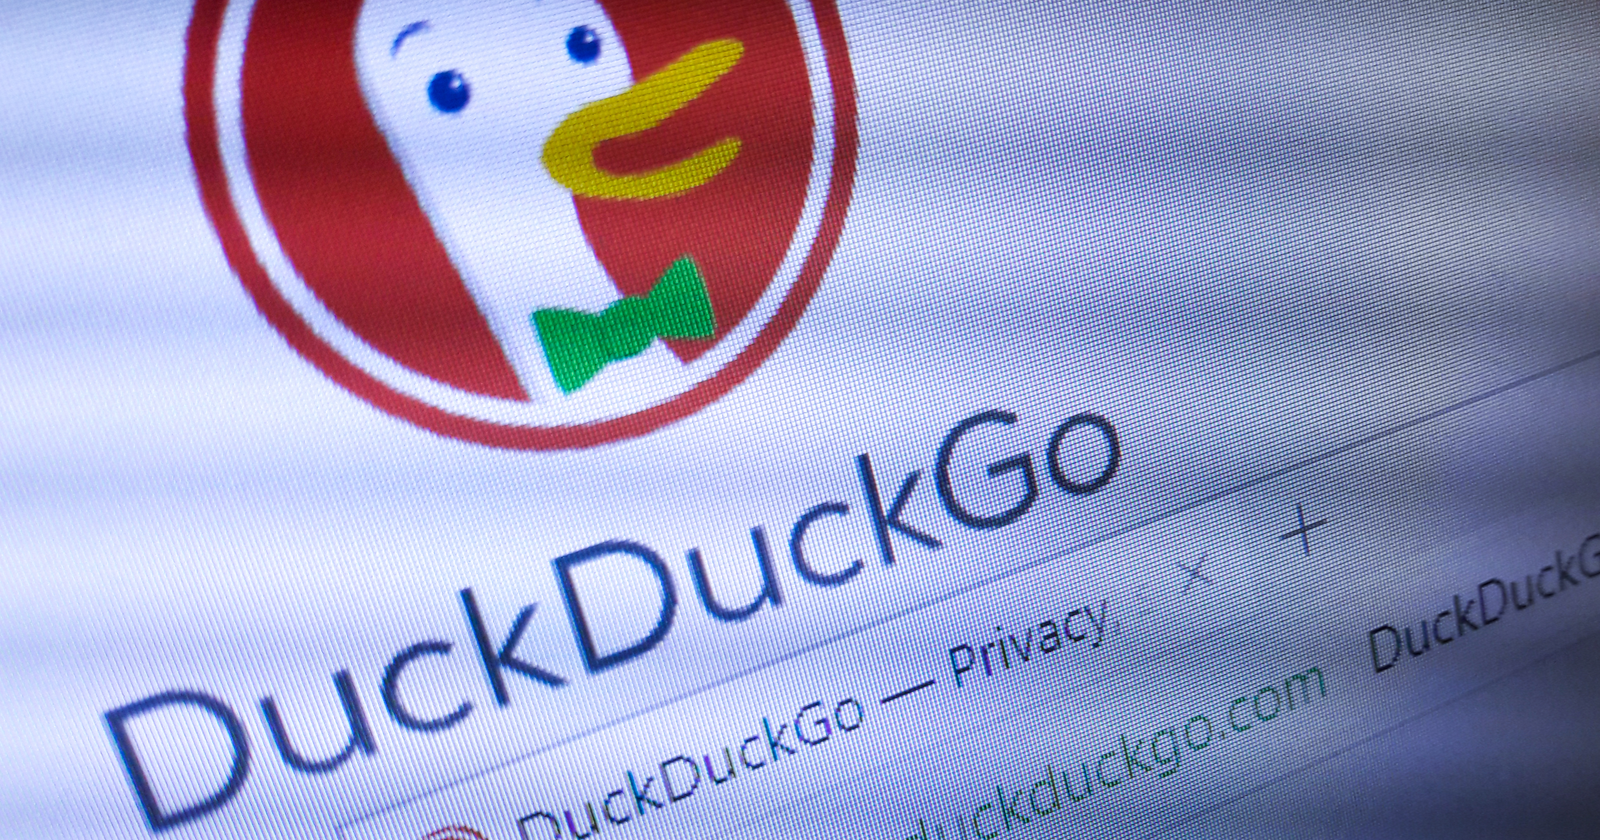 Google Transfers Ownership of Duck com to DuckDuckGo